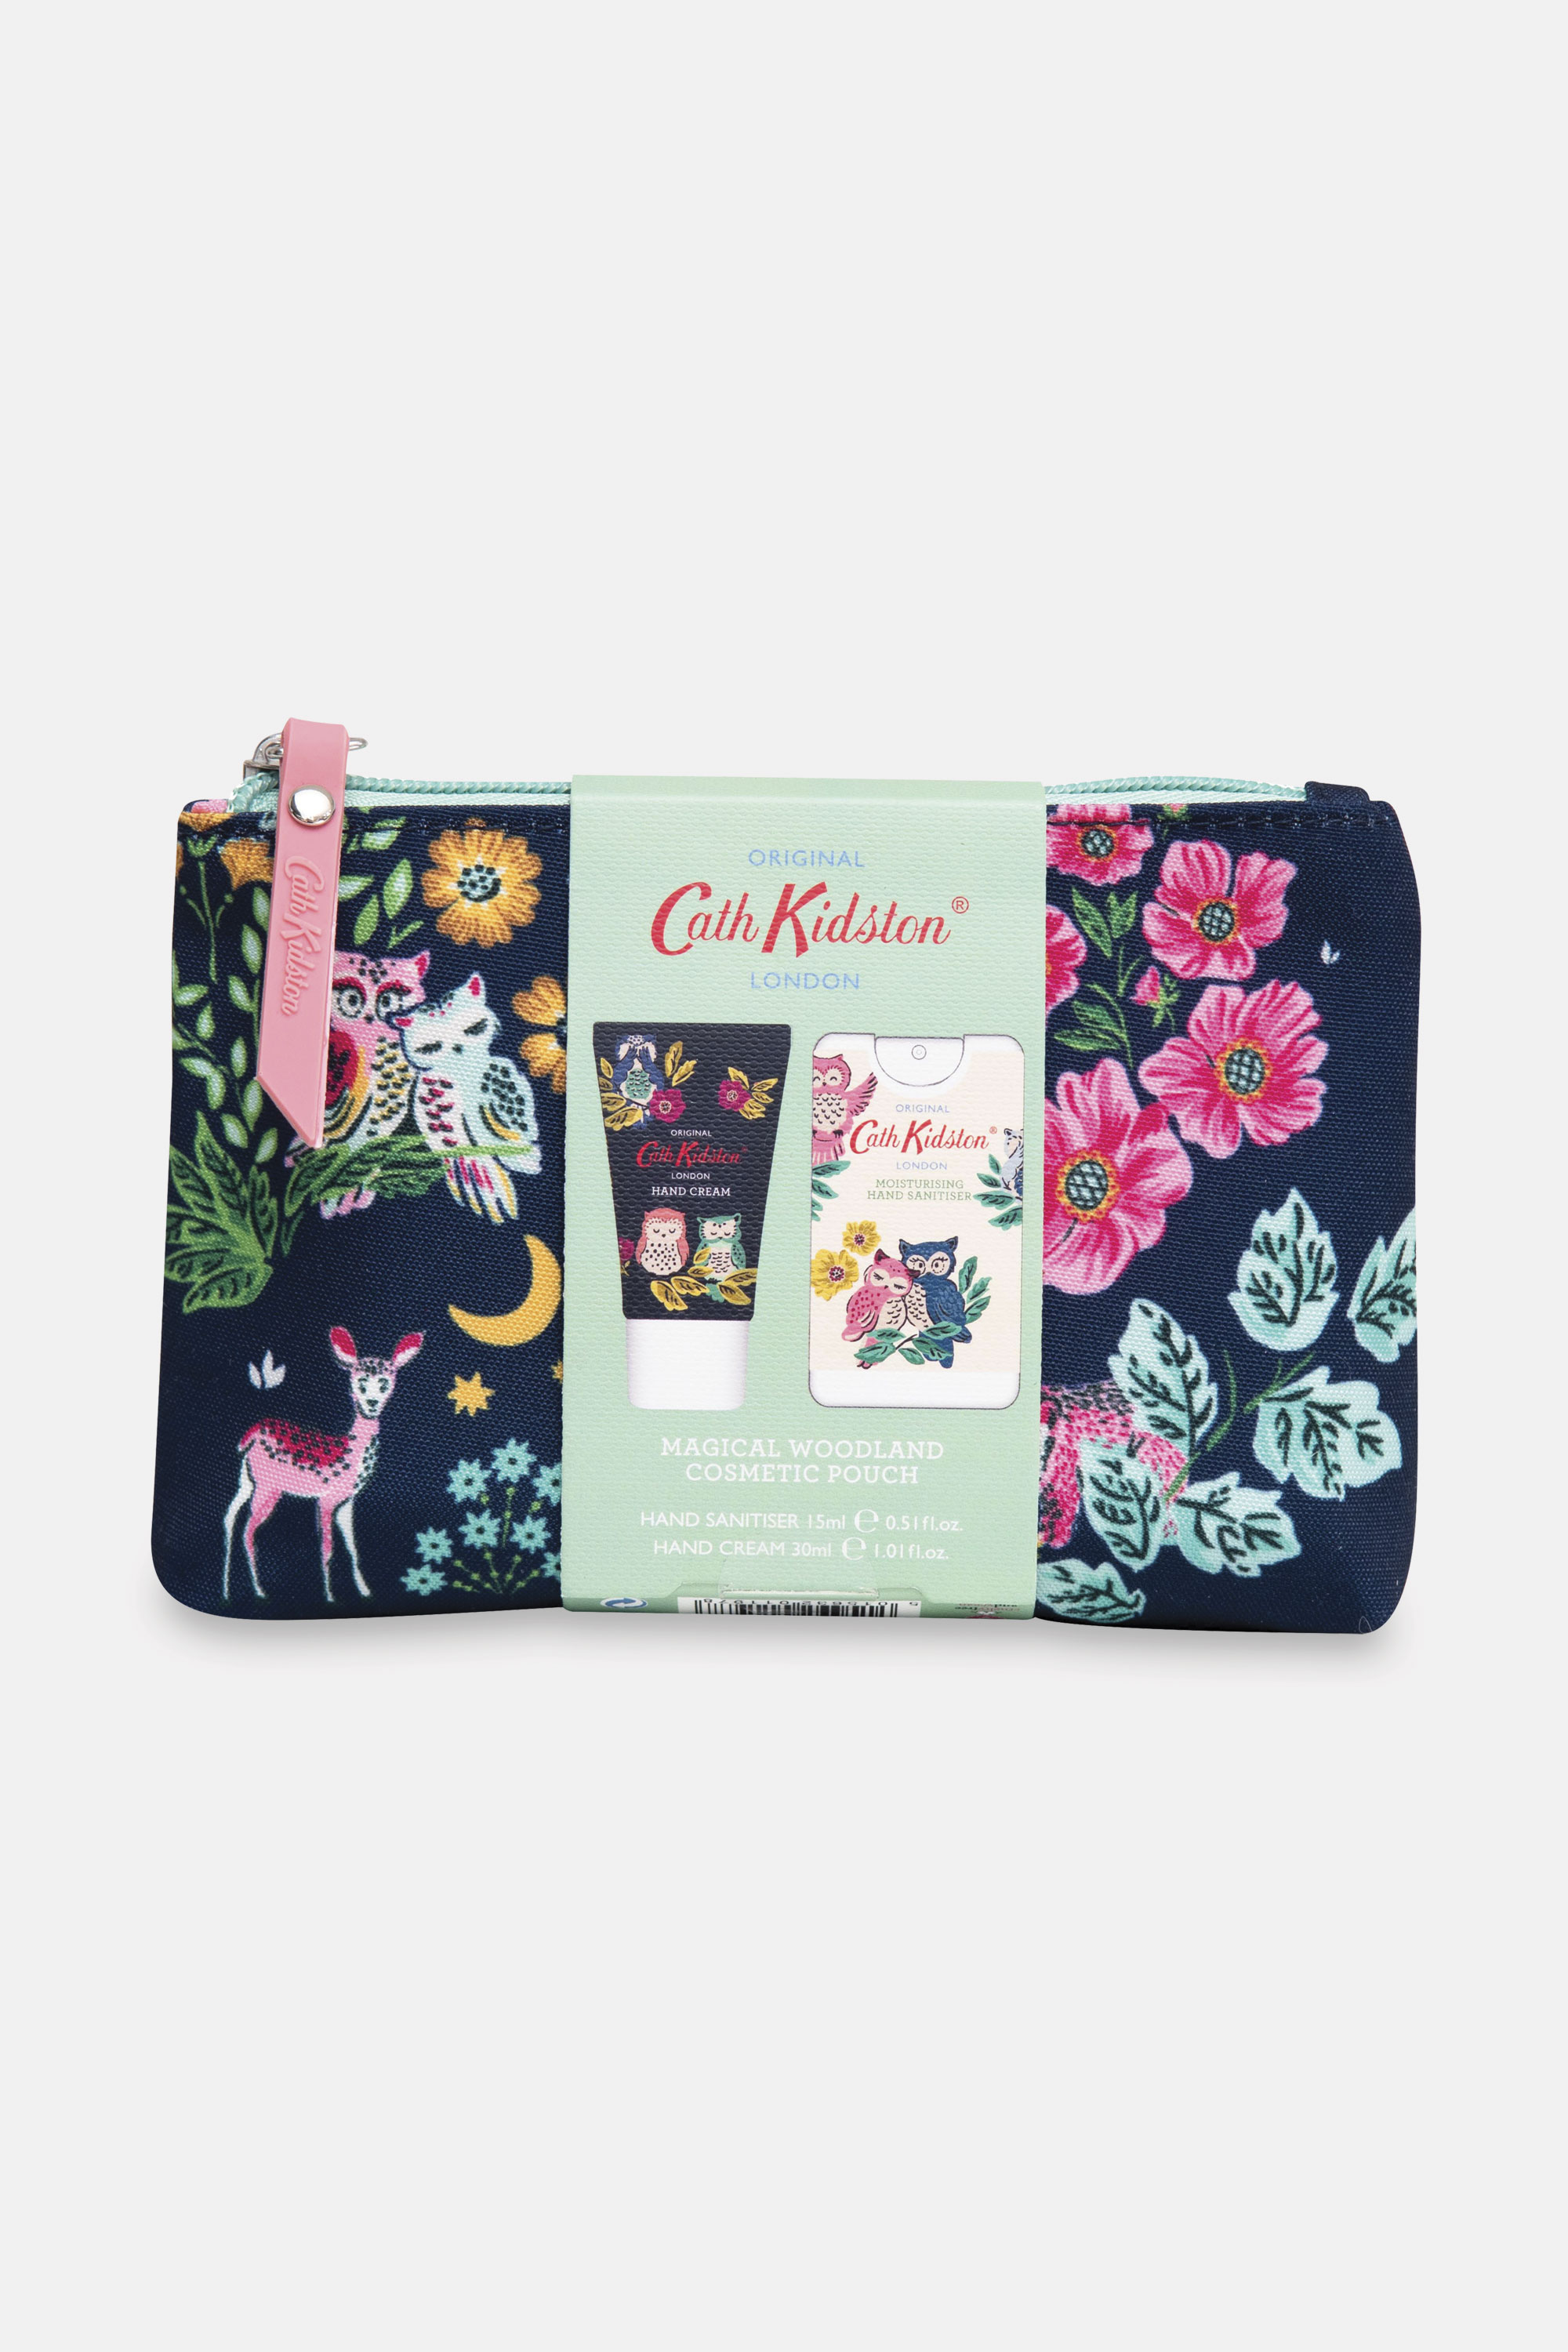 Cath Kidston Magical Woodland Hand Care Gift Set in Warm Cream